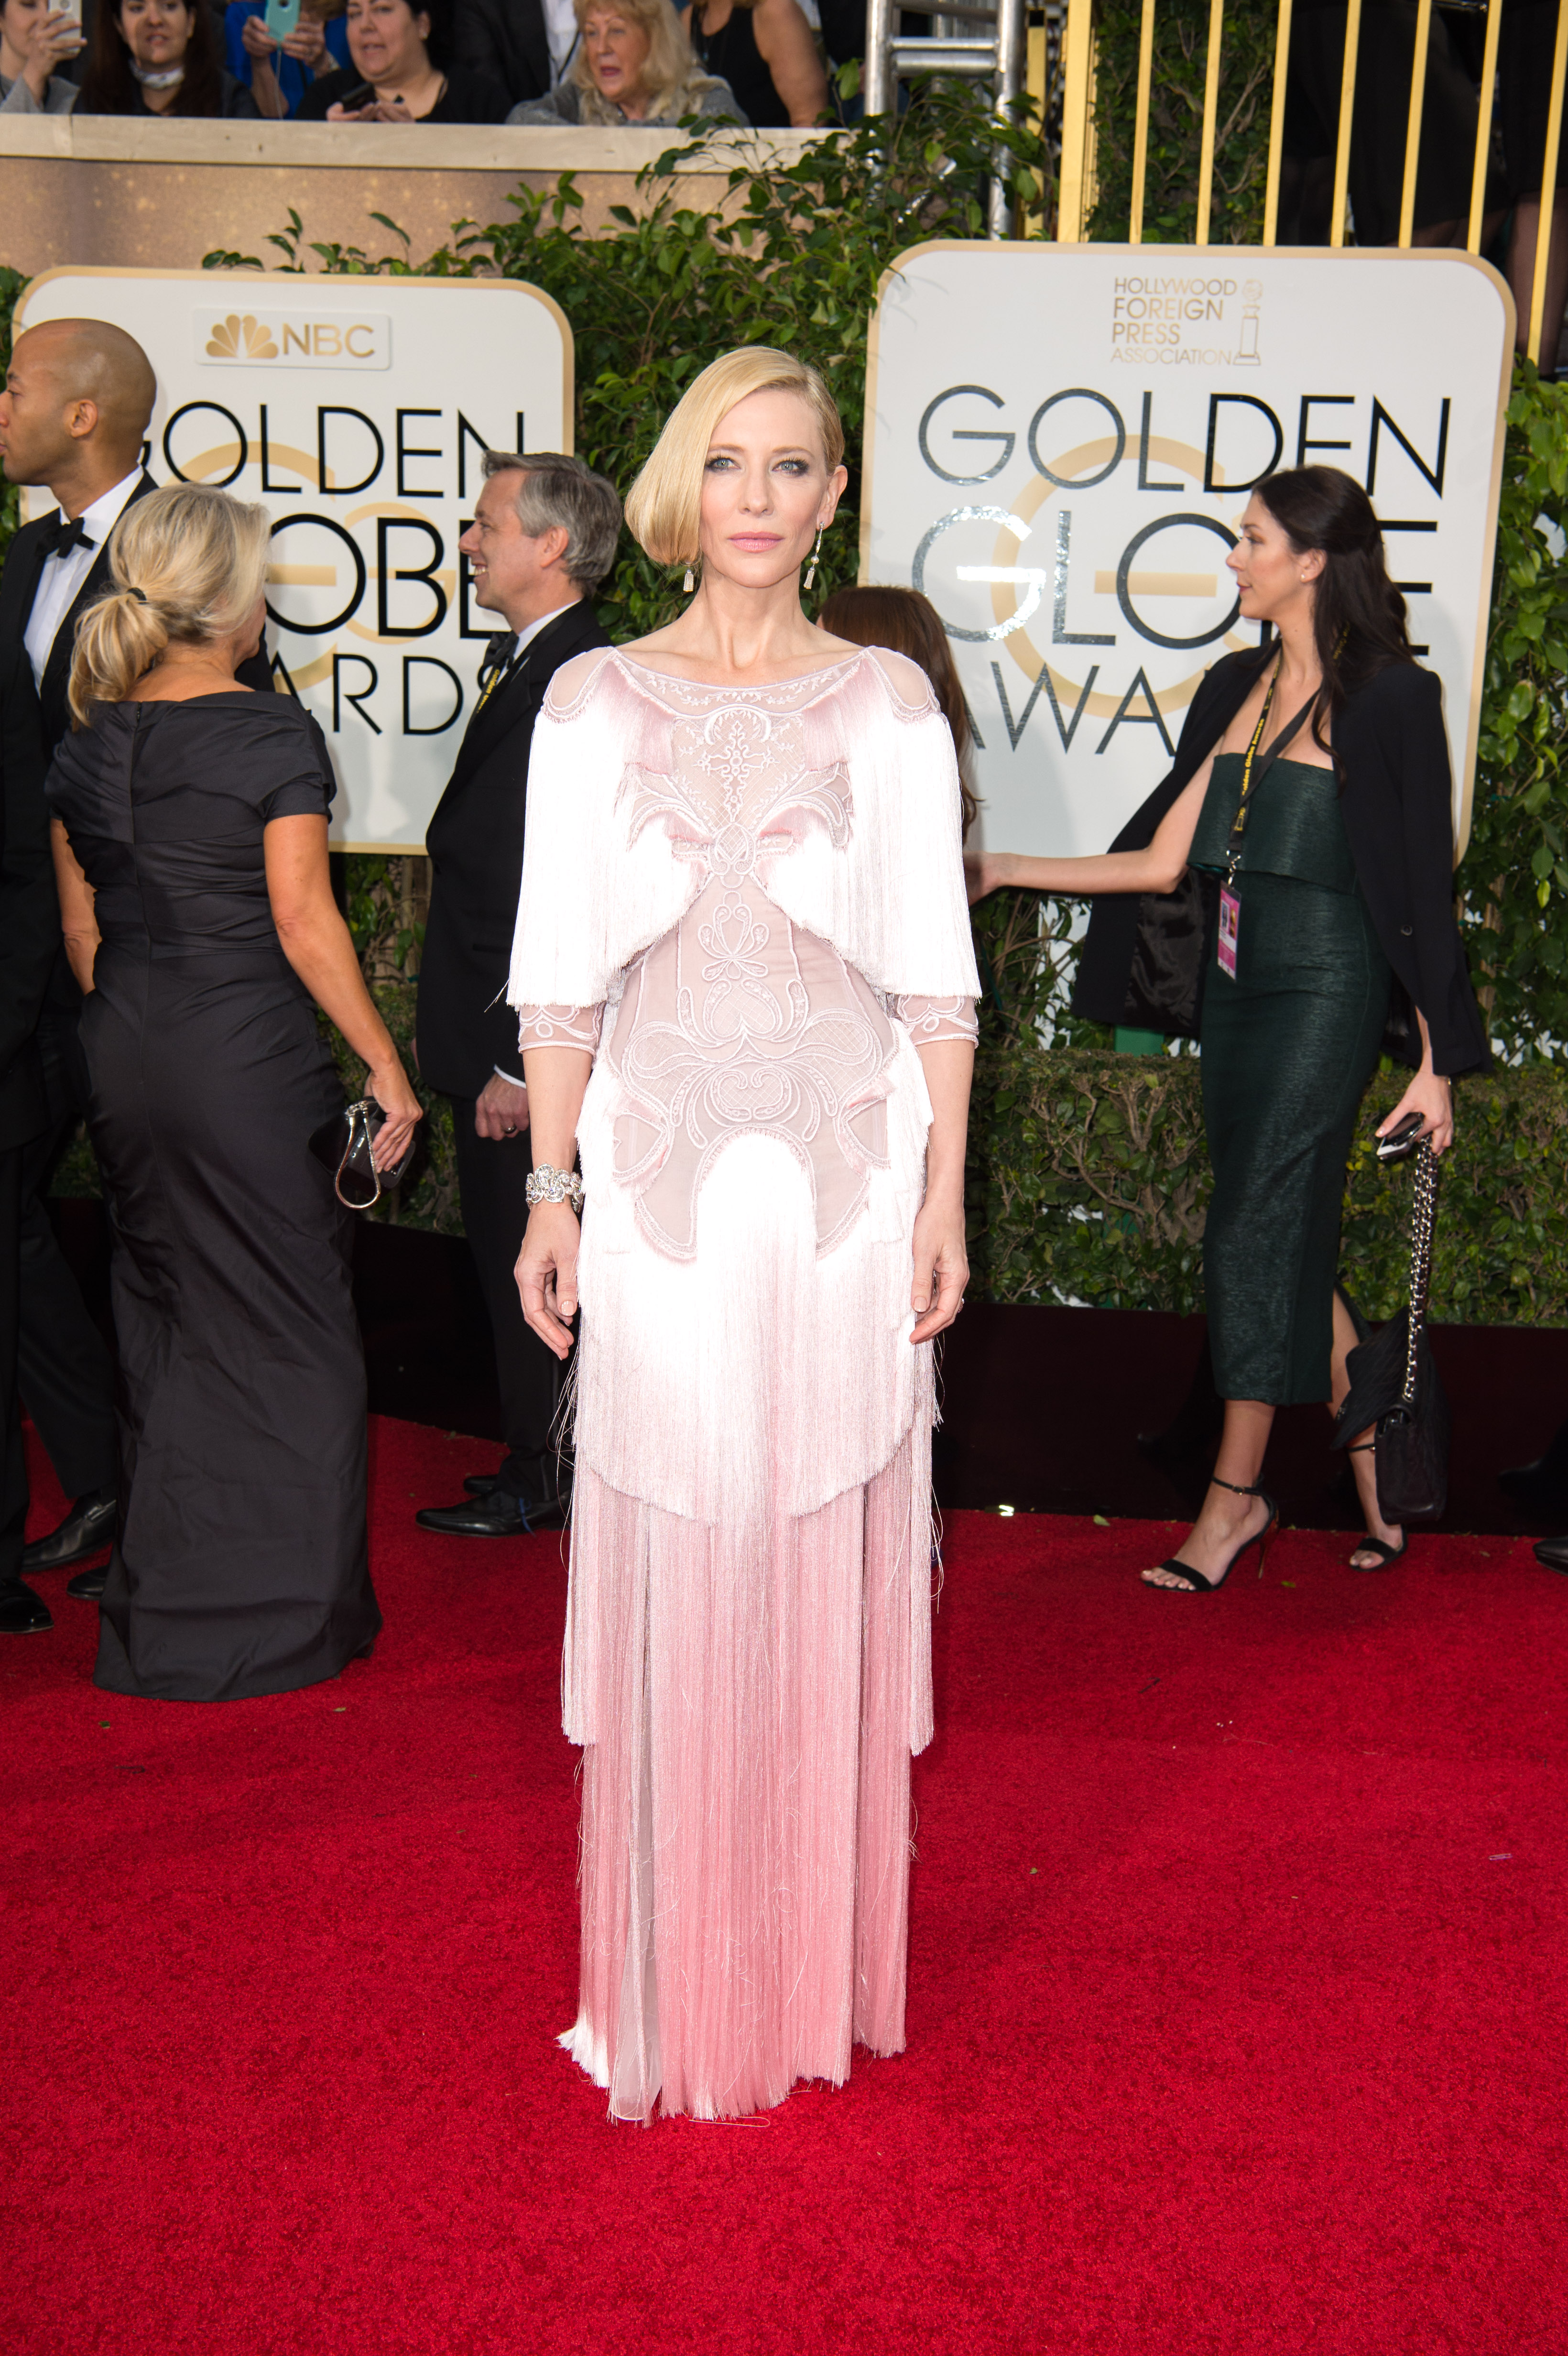 """Cate Blanchett, Golden Globe Nominee for BEST PERFORMANCE BY AN ACTRESS IN A MOTION PICTURE - DRAMA for """"Carol"""", arrives at the 73rd Annual Golden Globe Awards at the Beverly Hilton in Beverly Hills, CA on Sunday, January 10, 2016."""